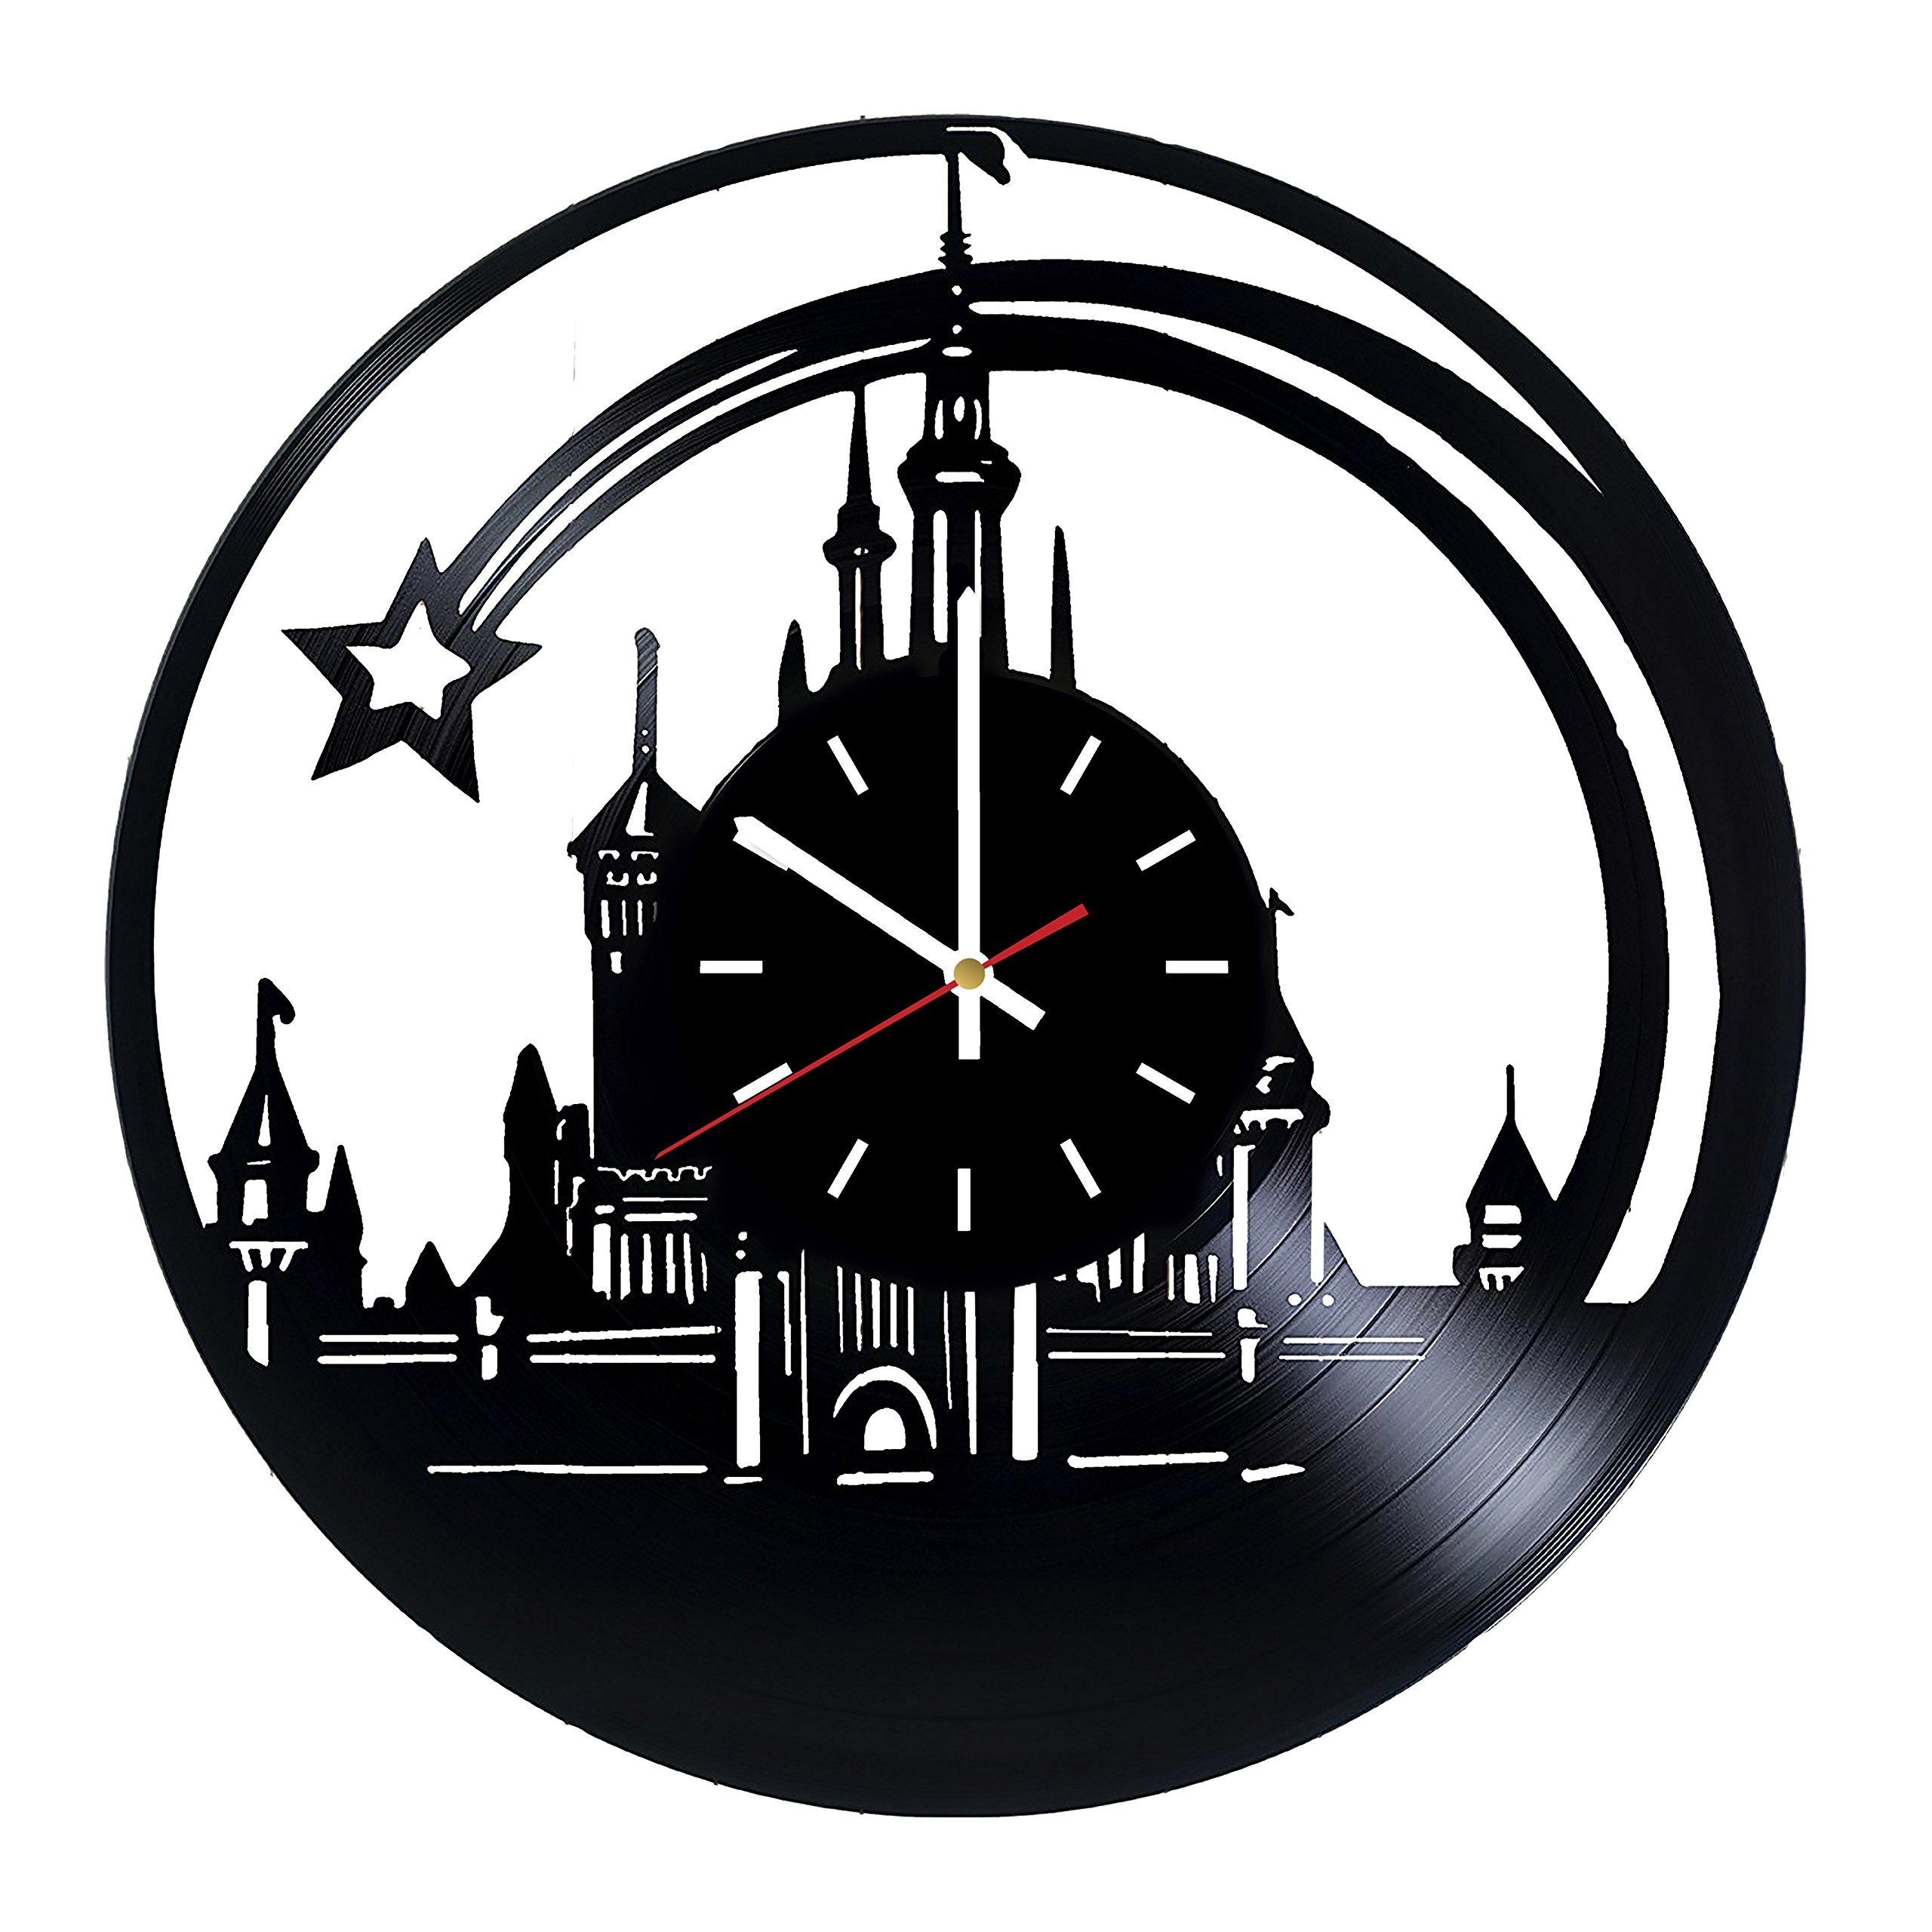 Everyday Arts Walt Disney World Castle Design Vinyl Record Wall Clock - Get Unique Bedroom or Garage Wall Decor - Gift Ideas for Friends, Brother - Darth Vader Unique Modern Art